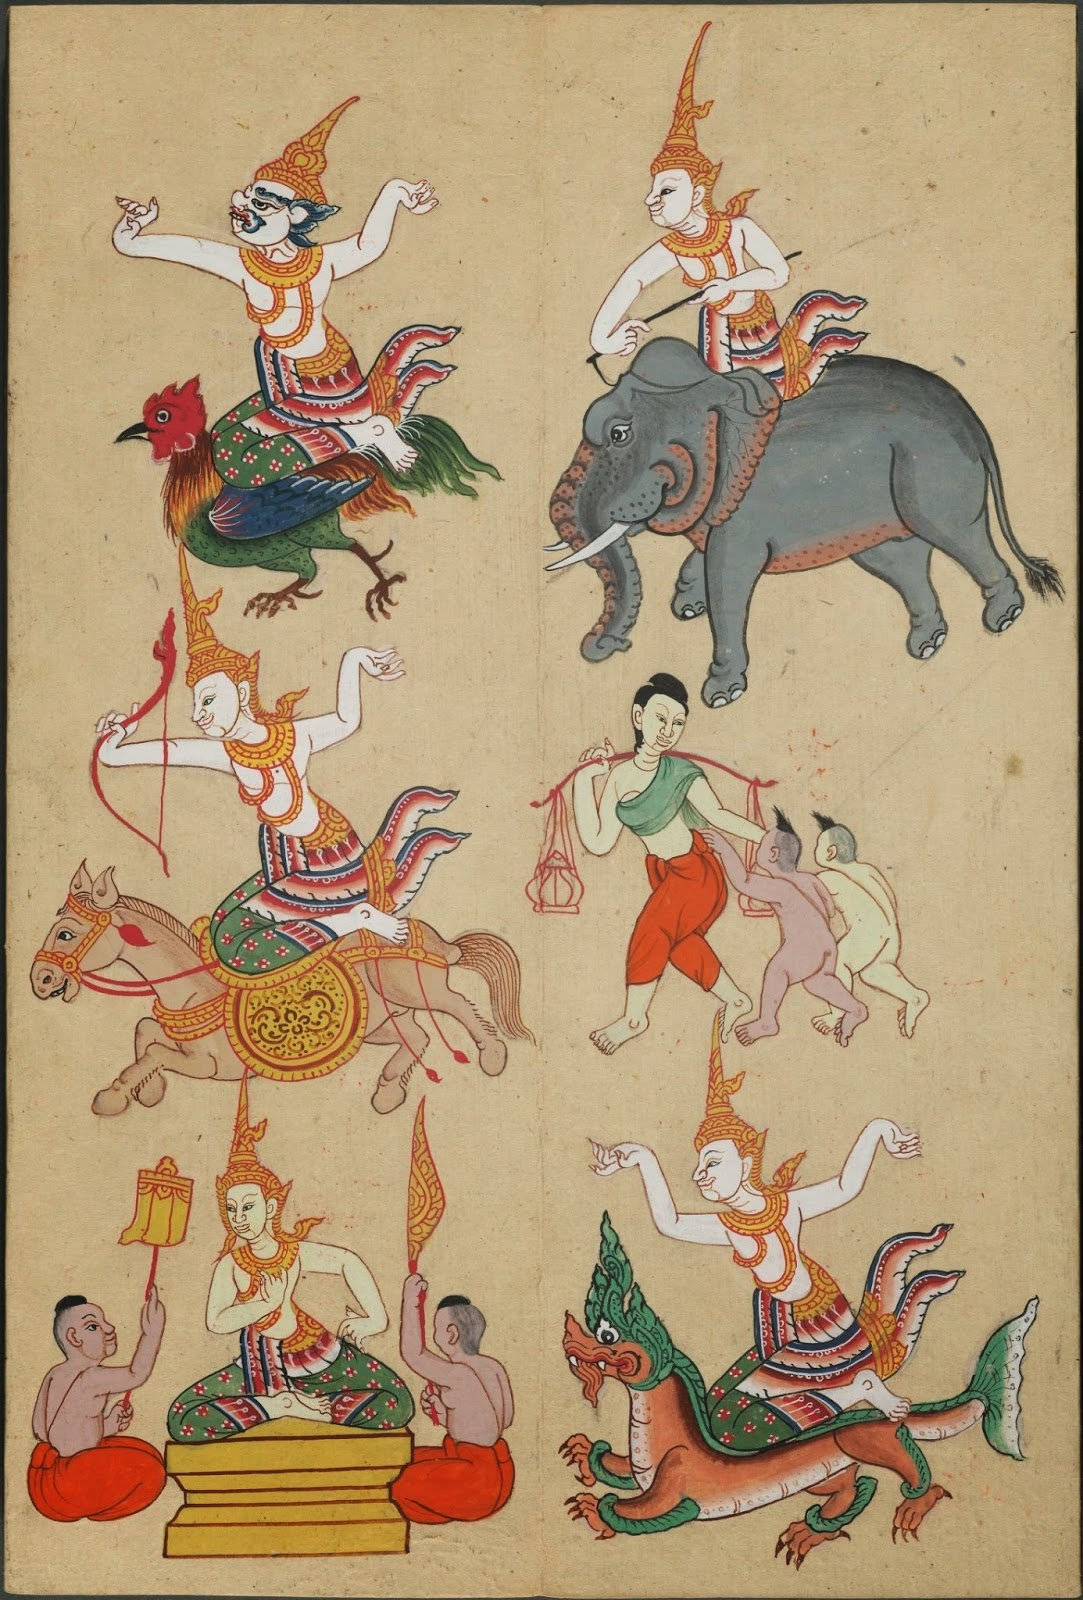 hand-painted figures and/or gods riding animals